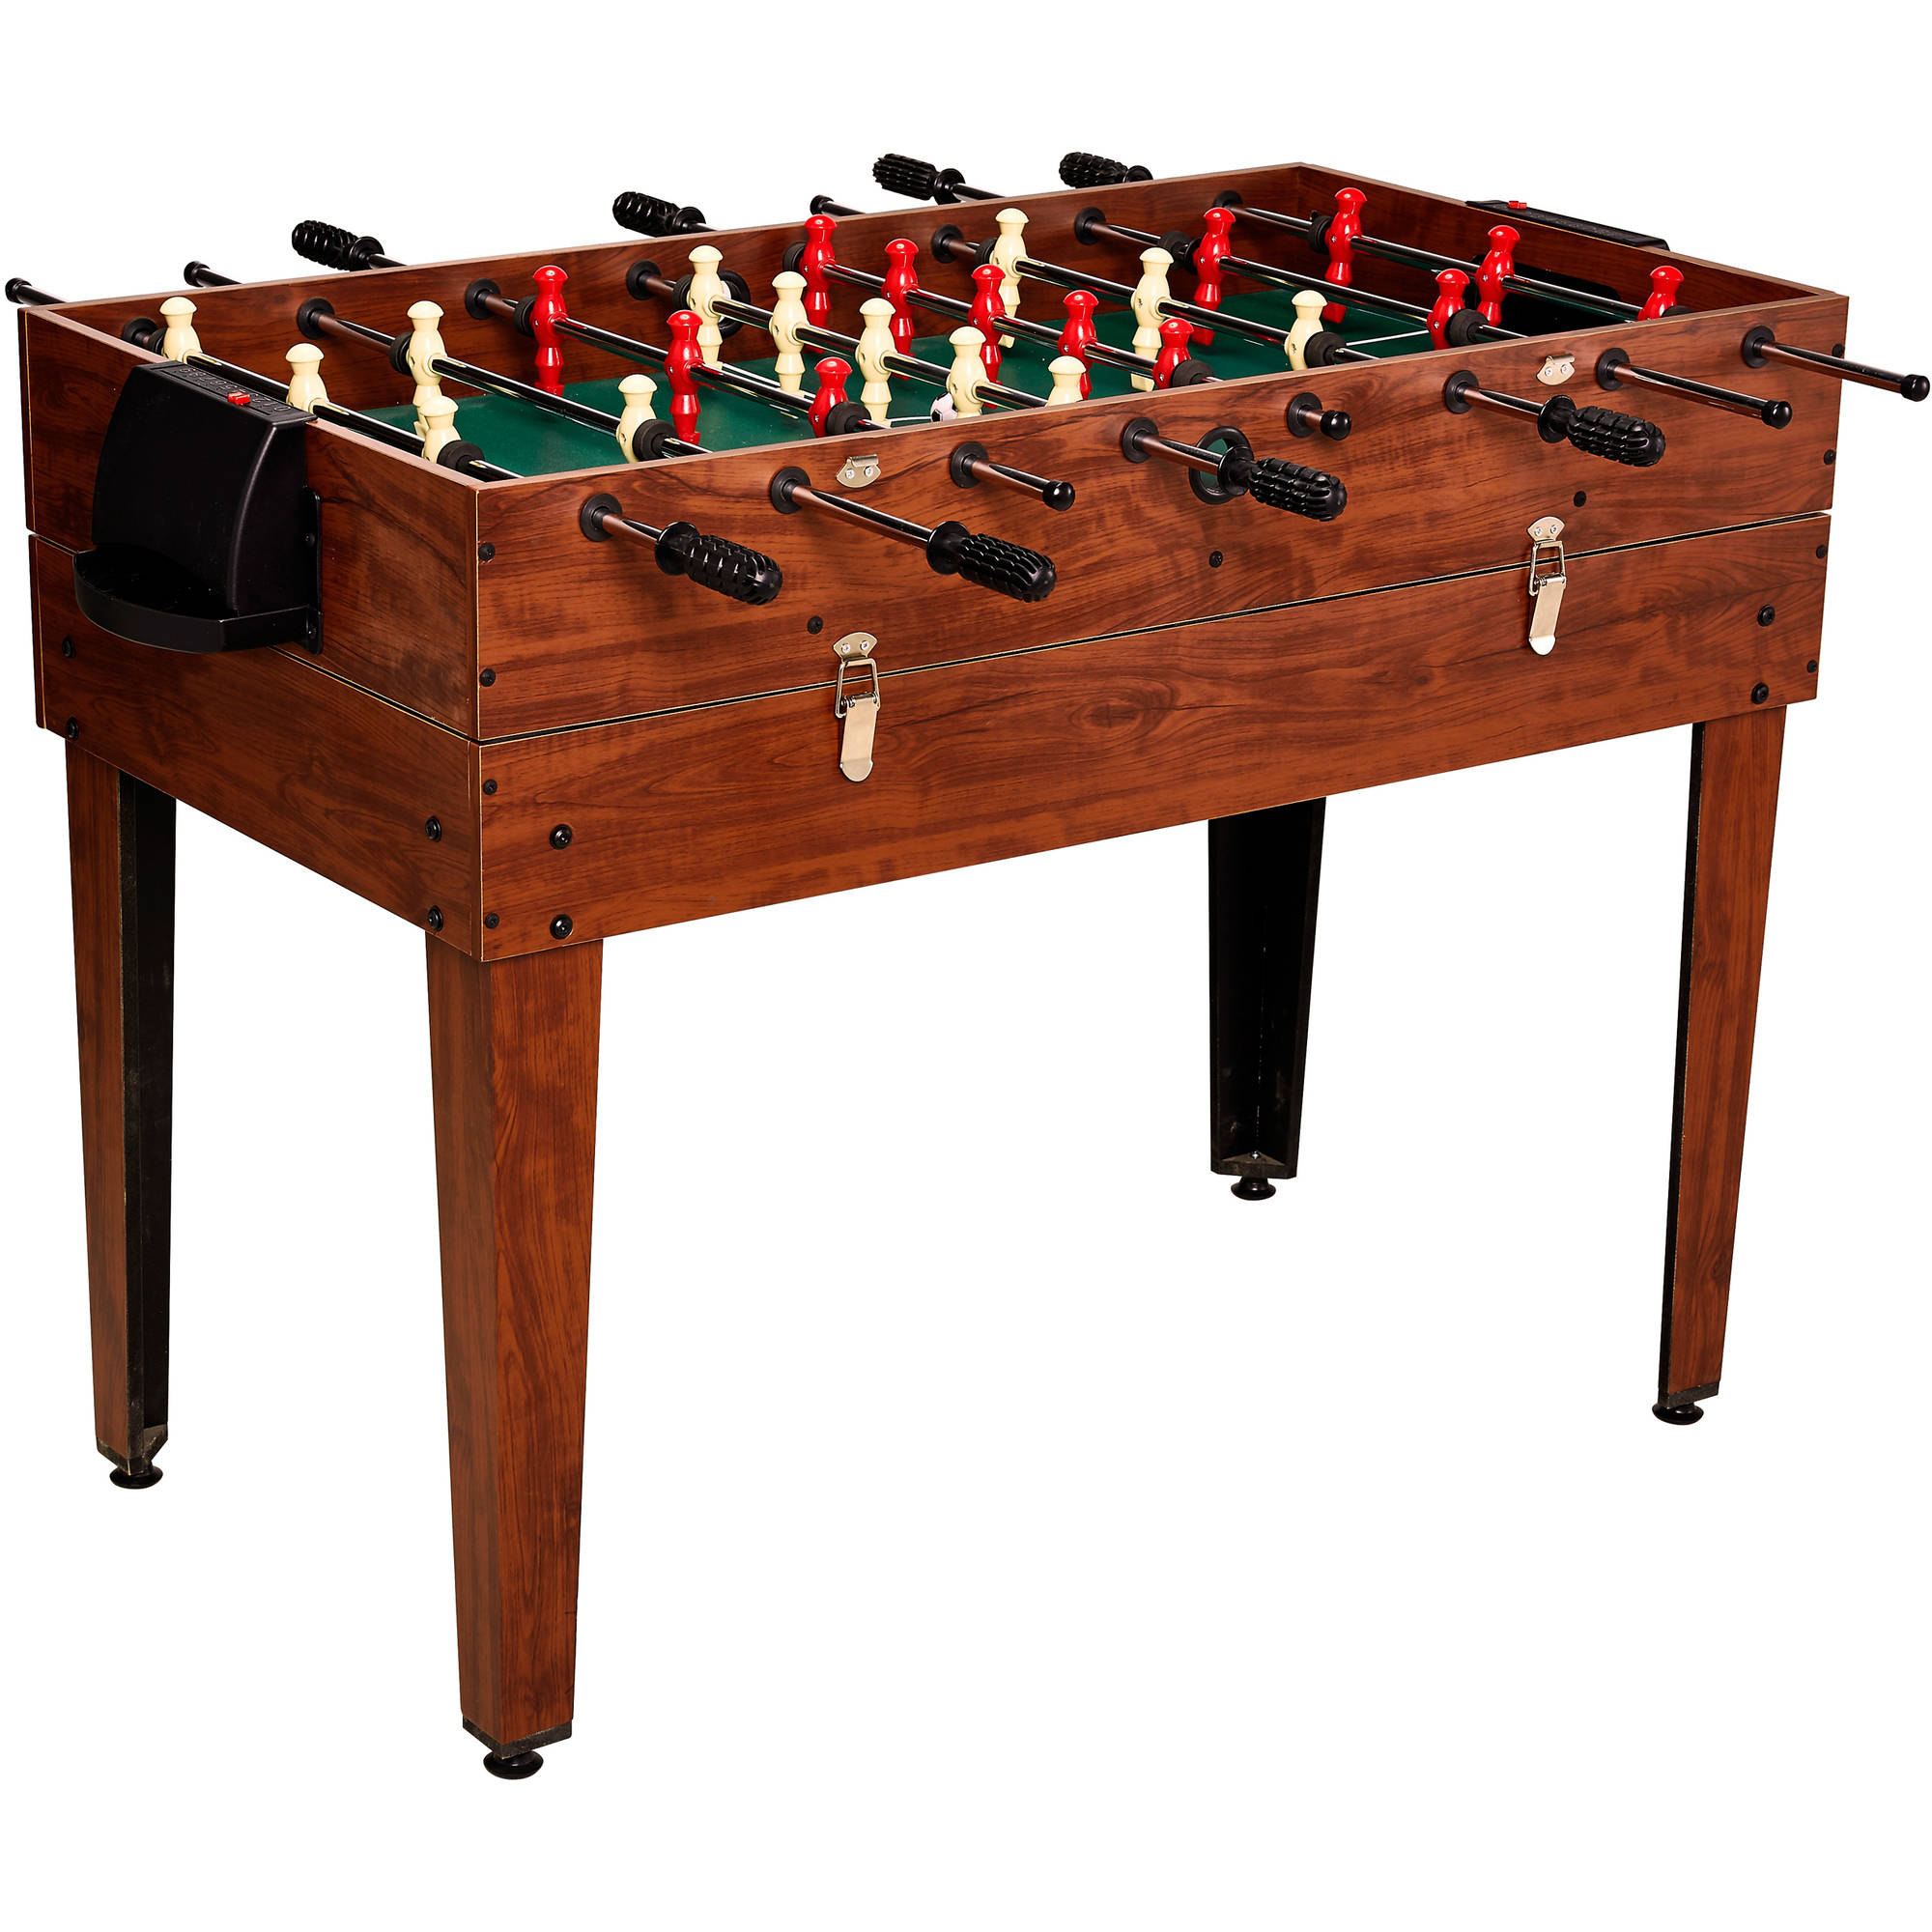 "MD Sports 48"" 3 in 1 bo Table Walmart"